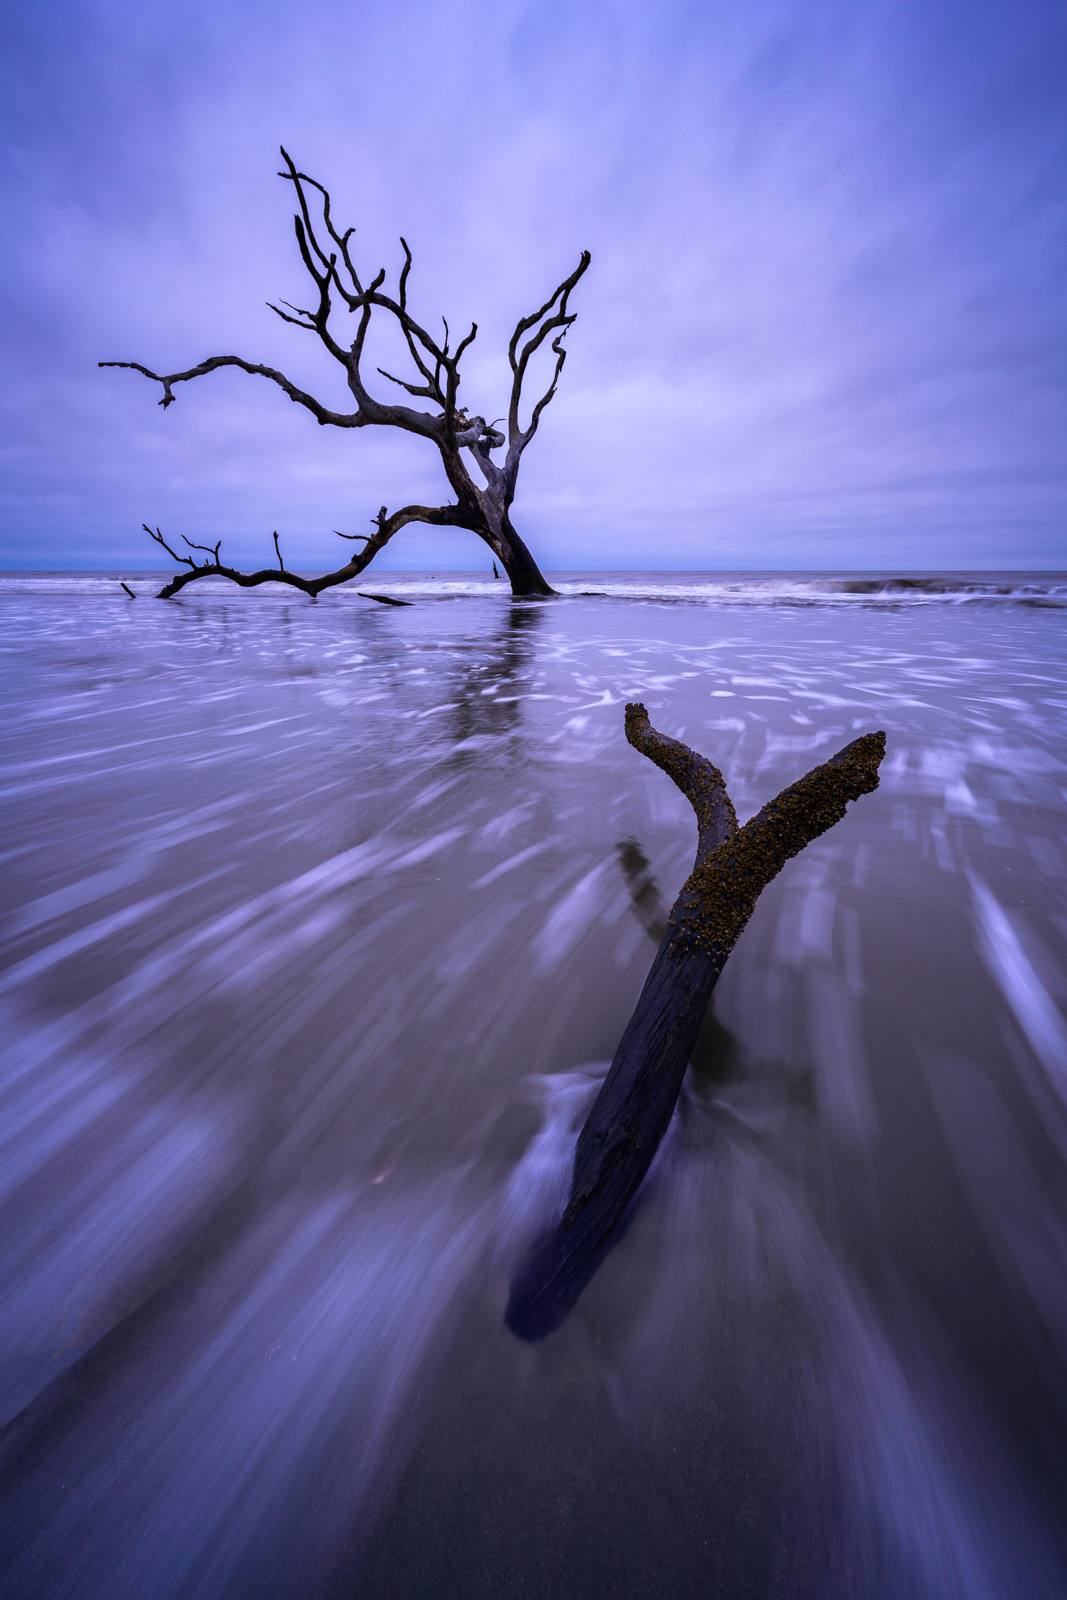 A live Oak stranded in the rising tides at twilight on this remote and uninhabited barrier island north of Charleston.